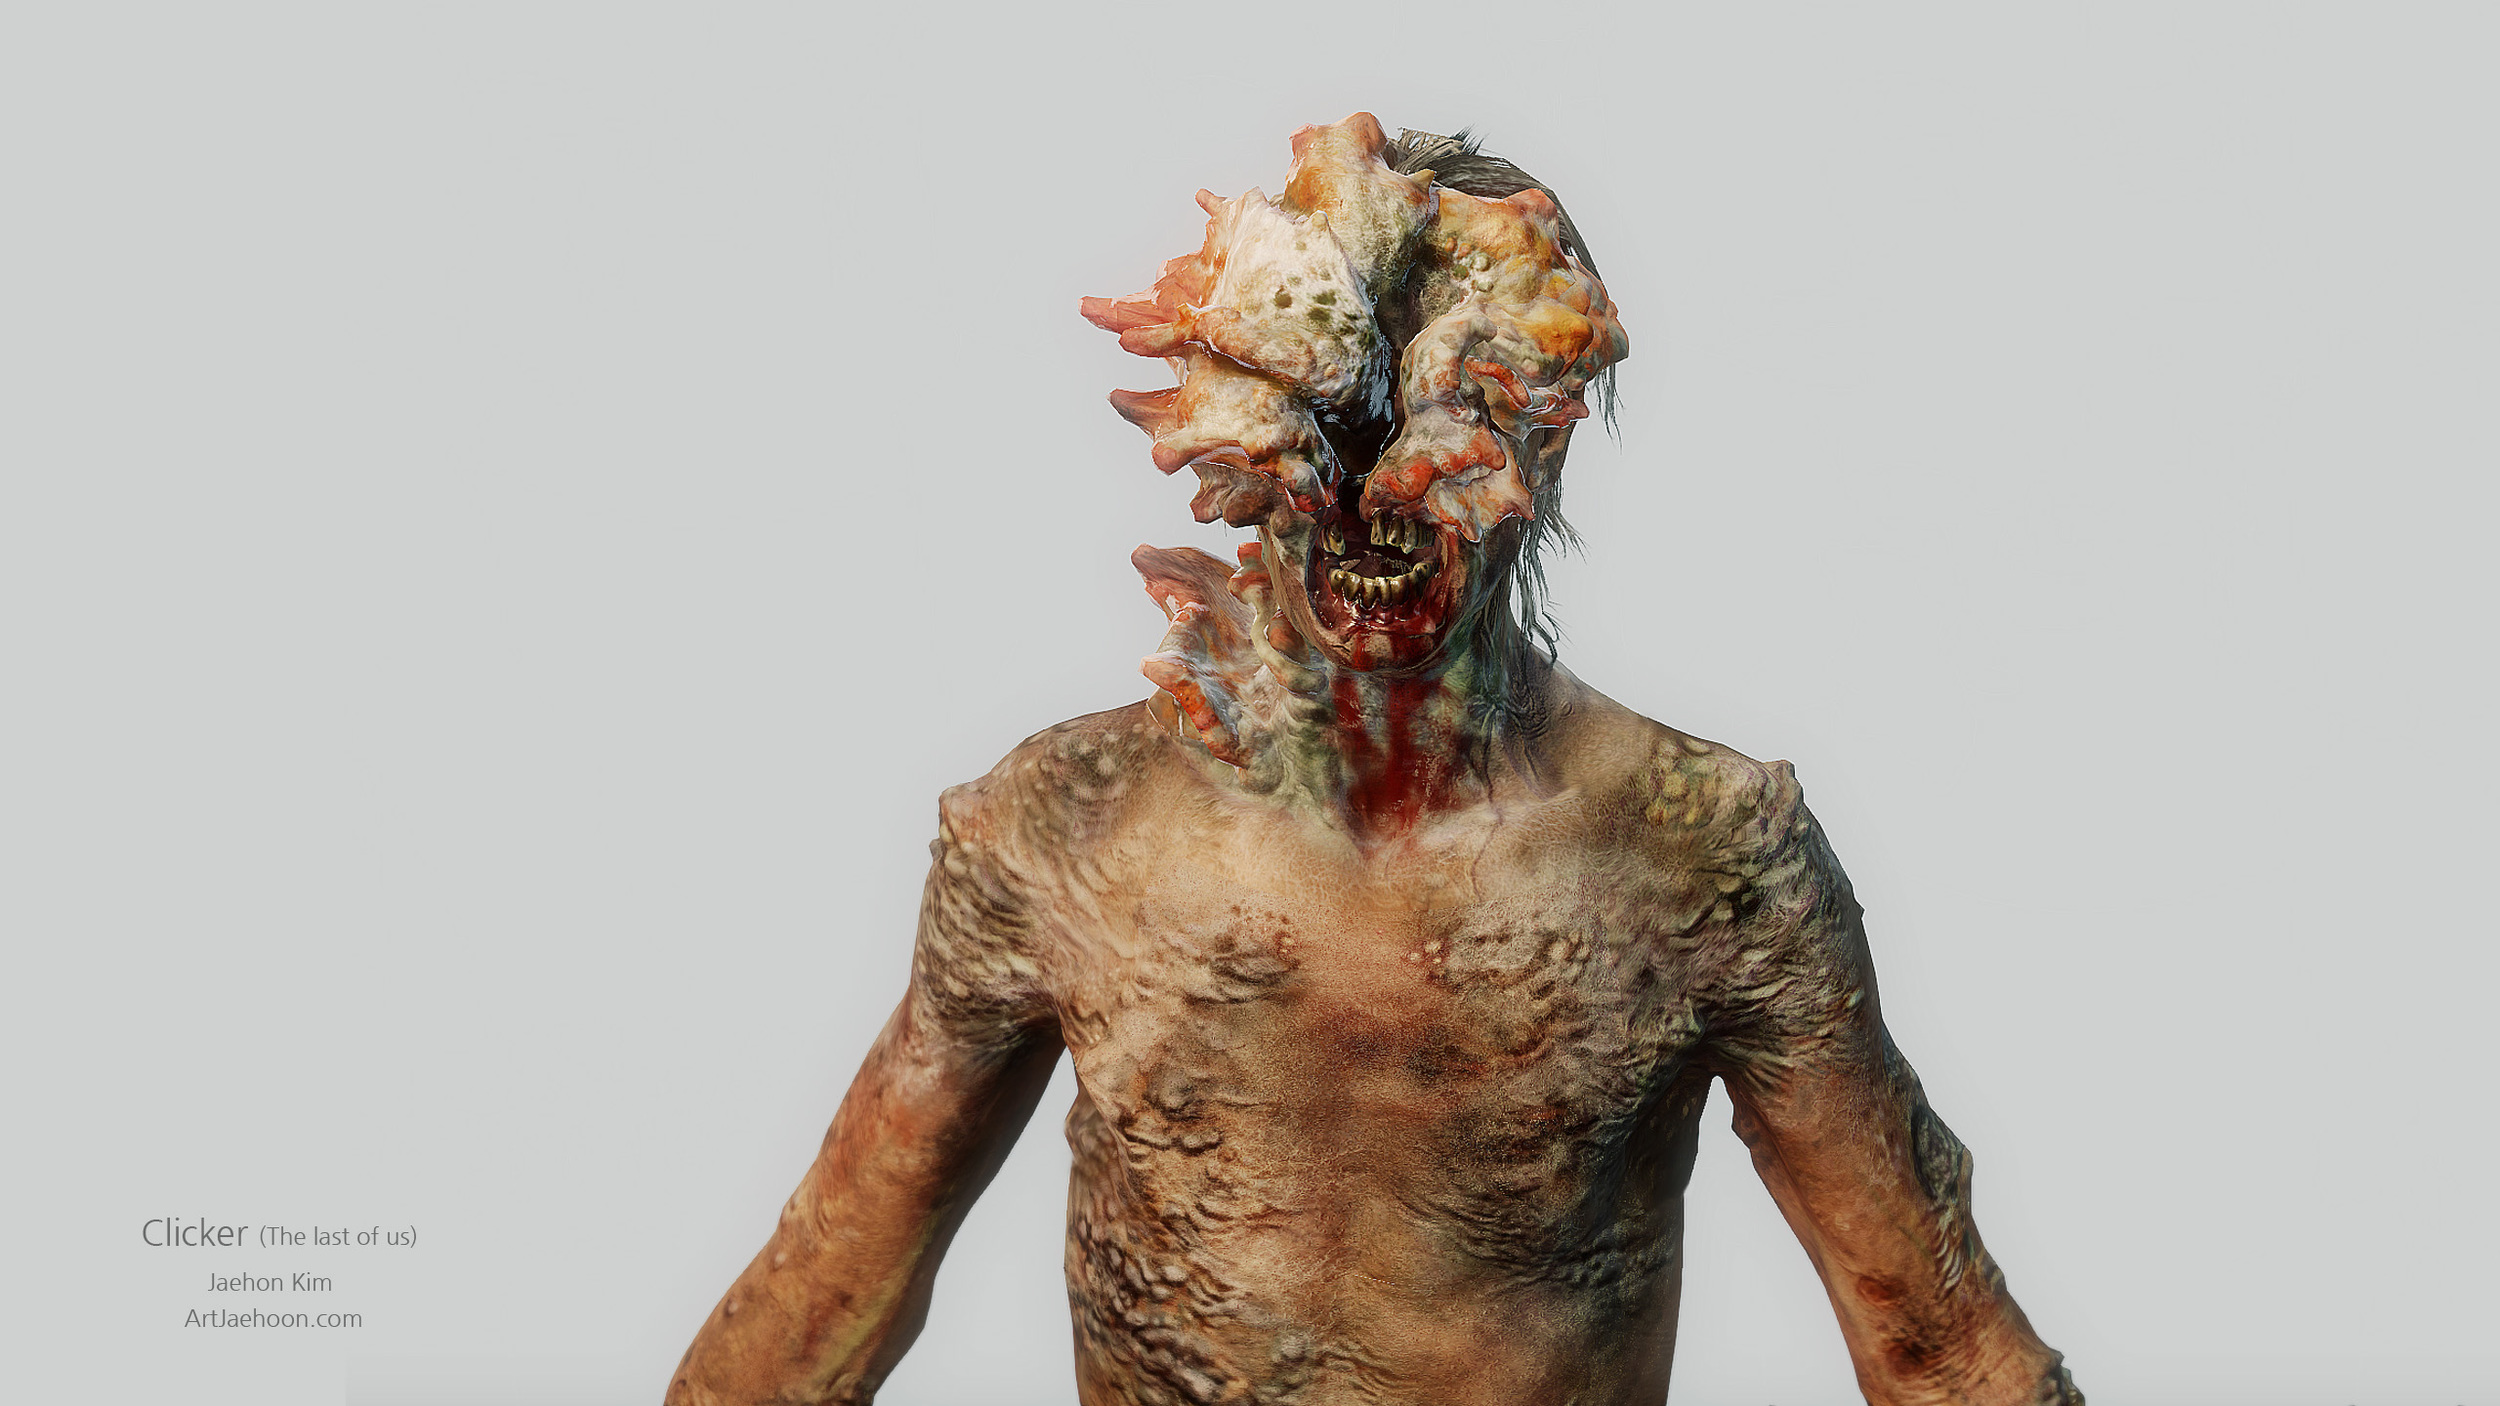 Clickers  appear less human than Runners, with faces that are skewed and scarred by fungus developed from their infected brains. Clickers are dangerous and much more aggressive than Runners, and no longer resist the fungus because their humanity has been eliminated.